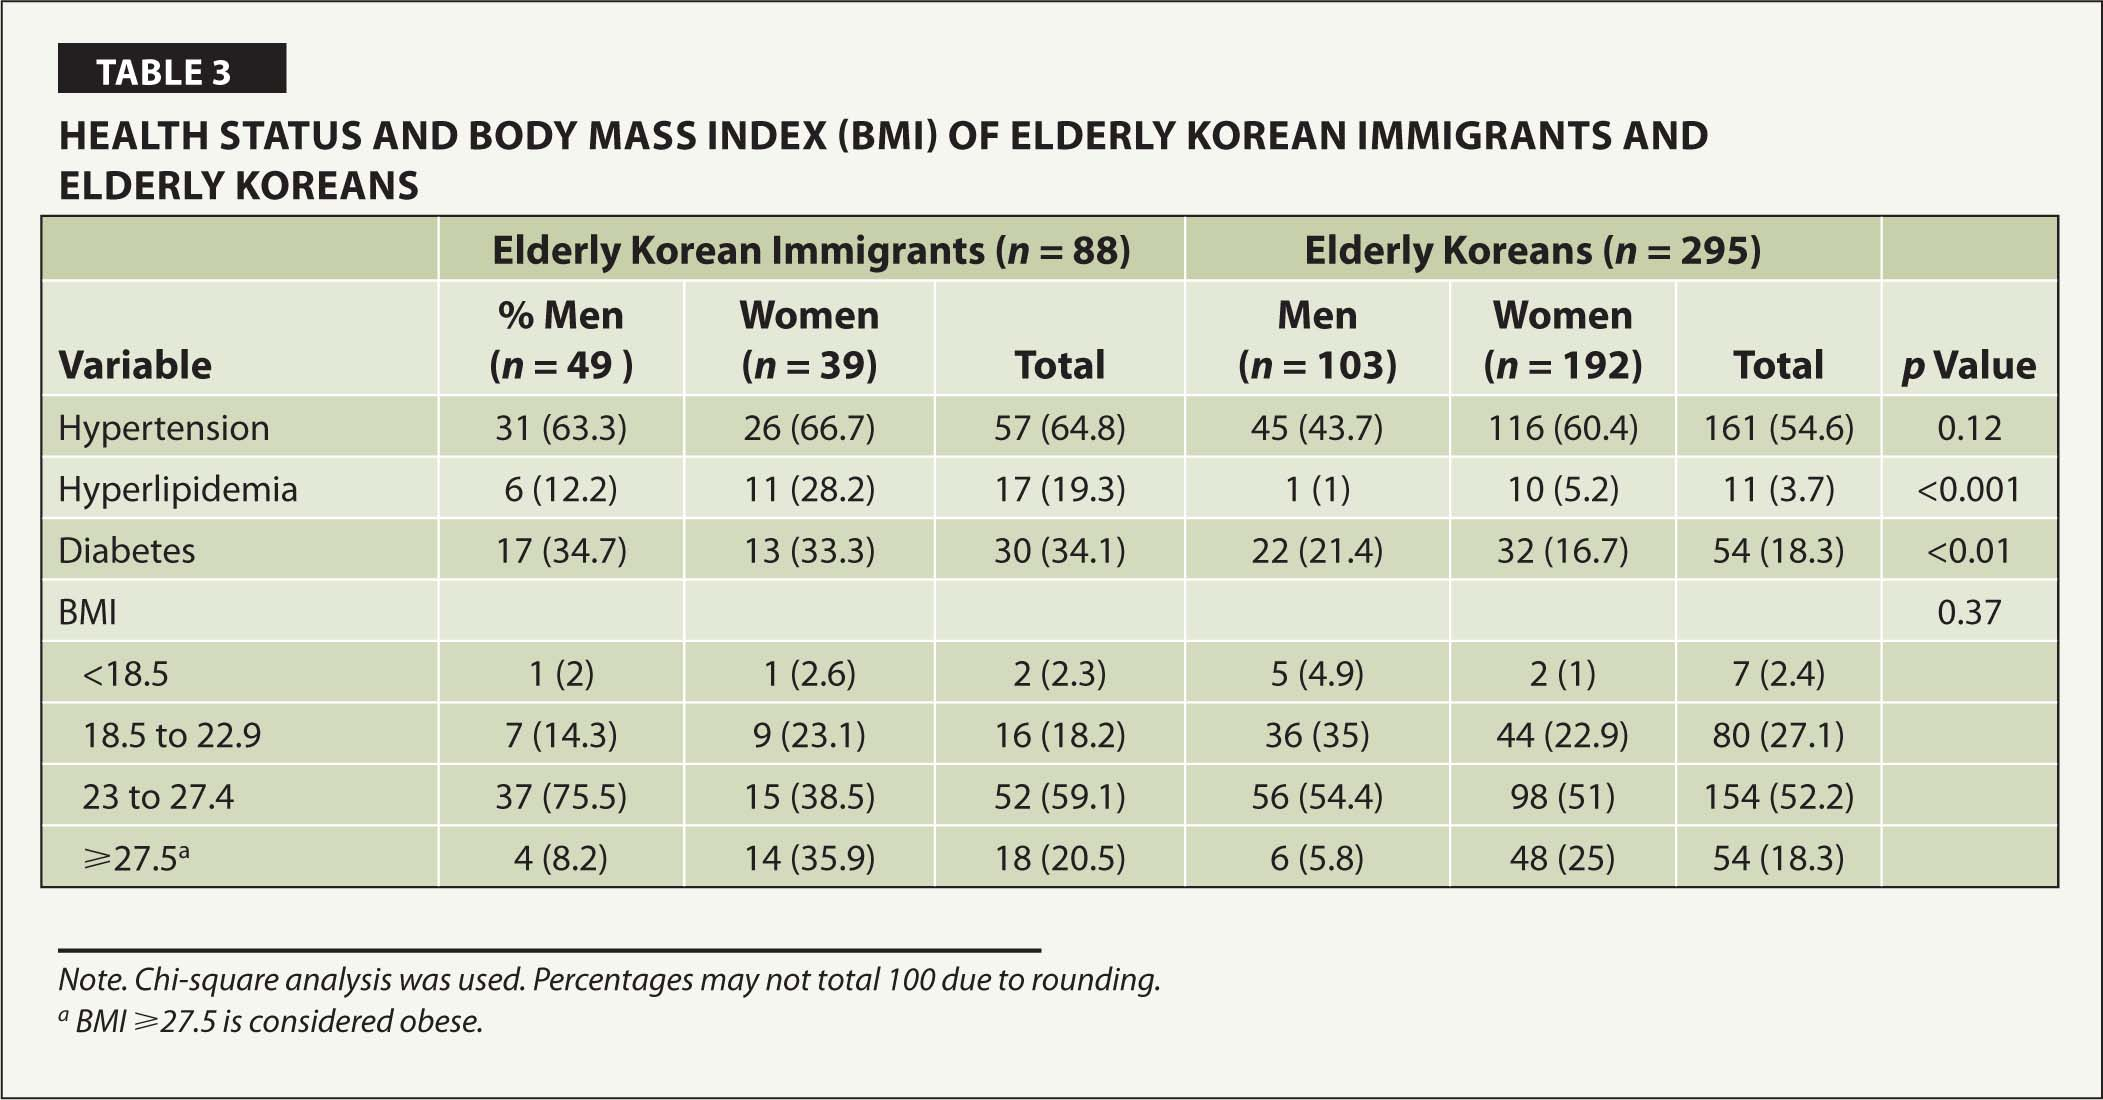 Health Status and Body Mass Index (BMI) of Elderly Korean Immigrants and Elderly Koreans